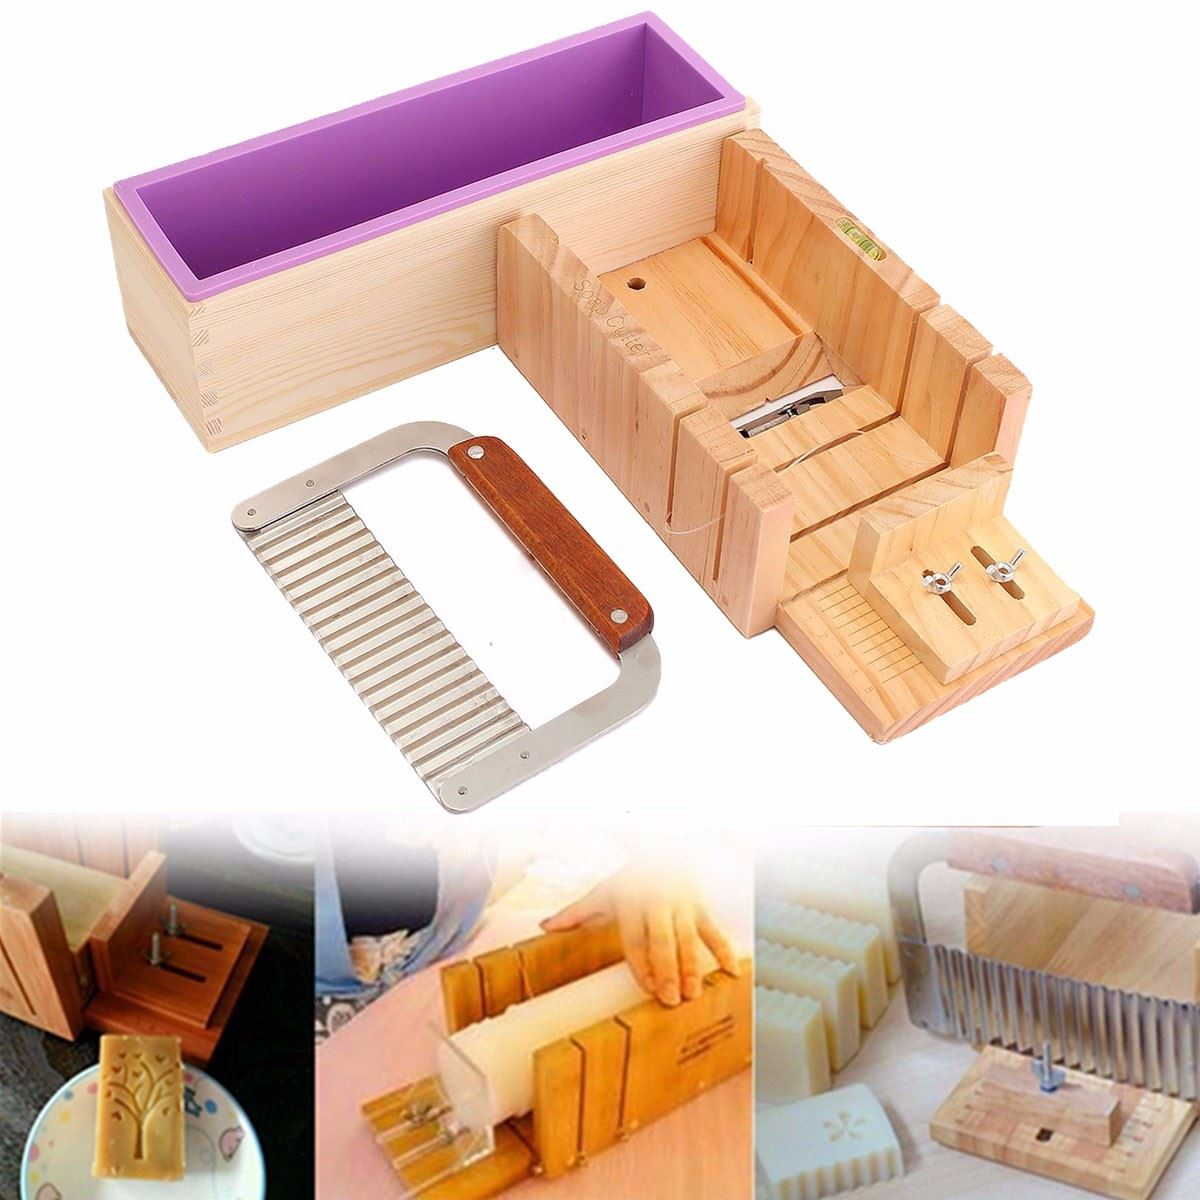 Wooden Soap Loaf Bar Cake Cutter Box With Silicone Soap Molds Wavy Straight Cutter Slicer DIY